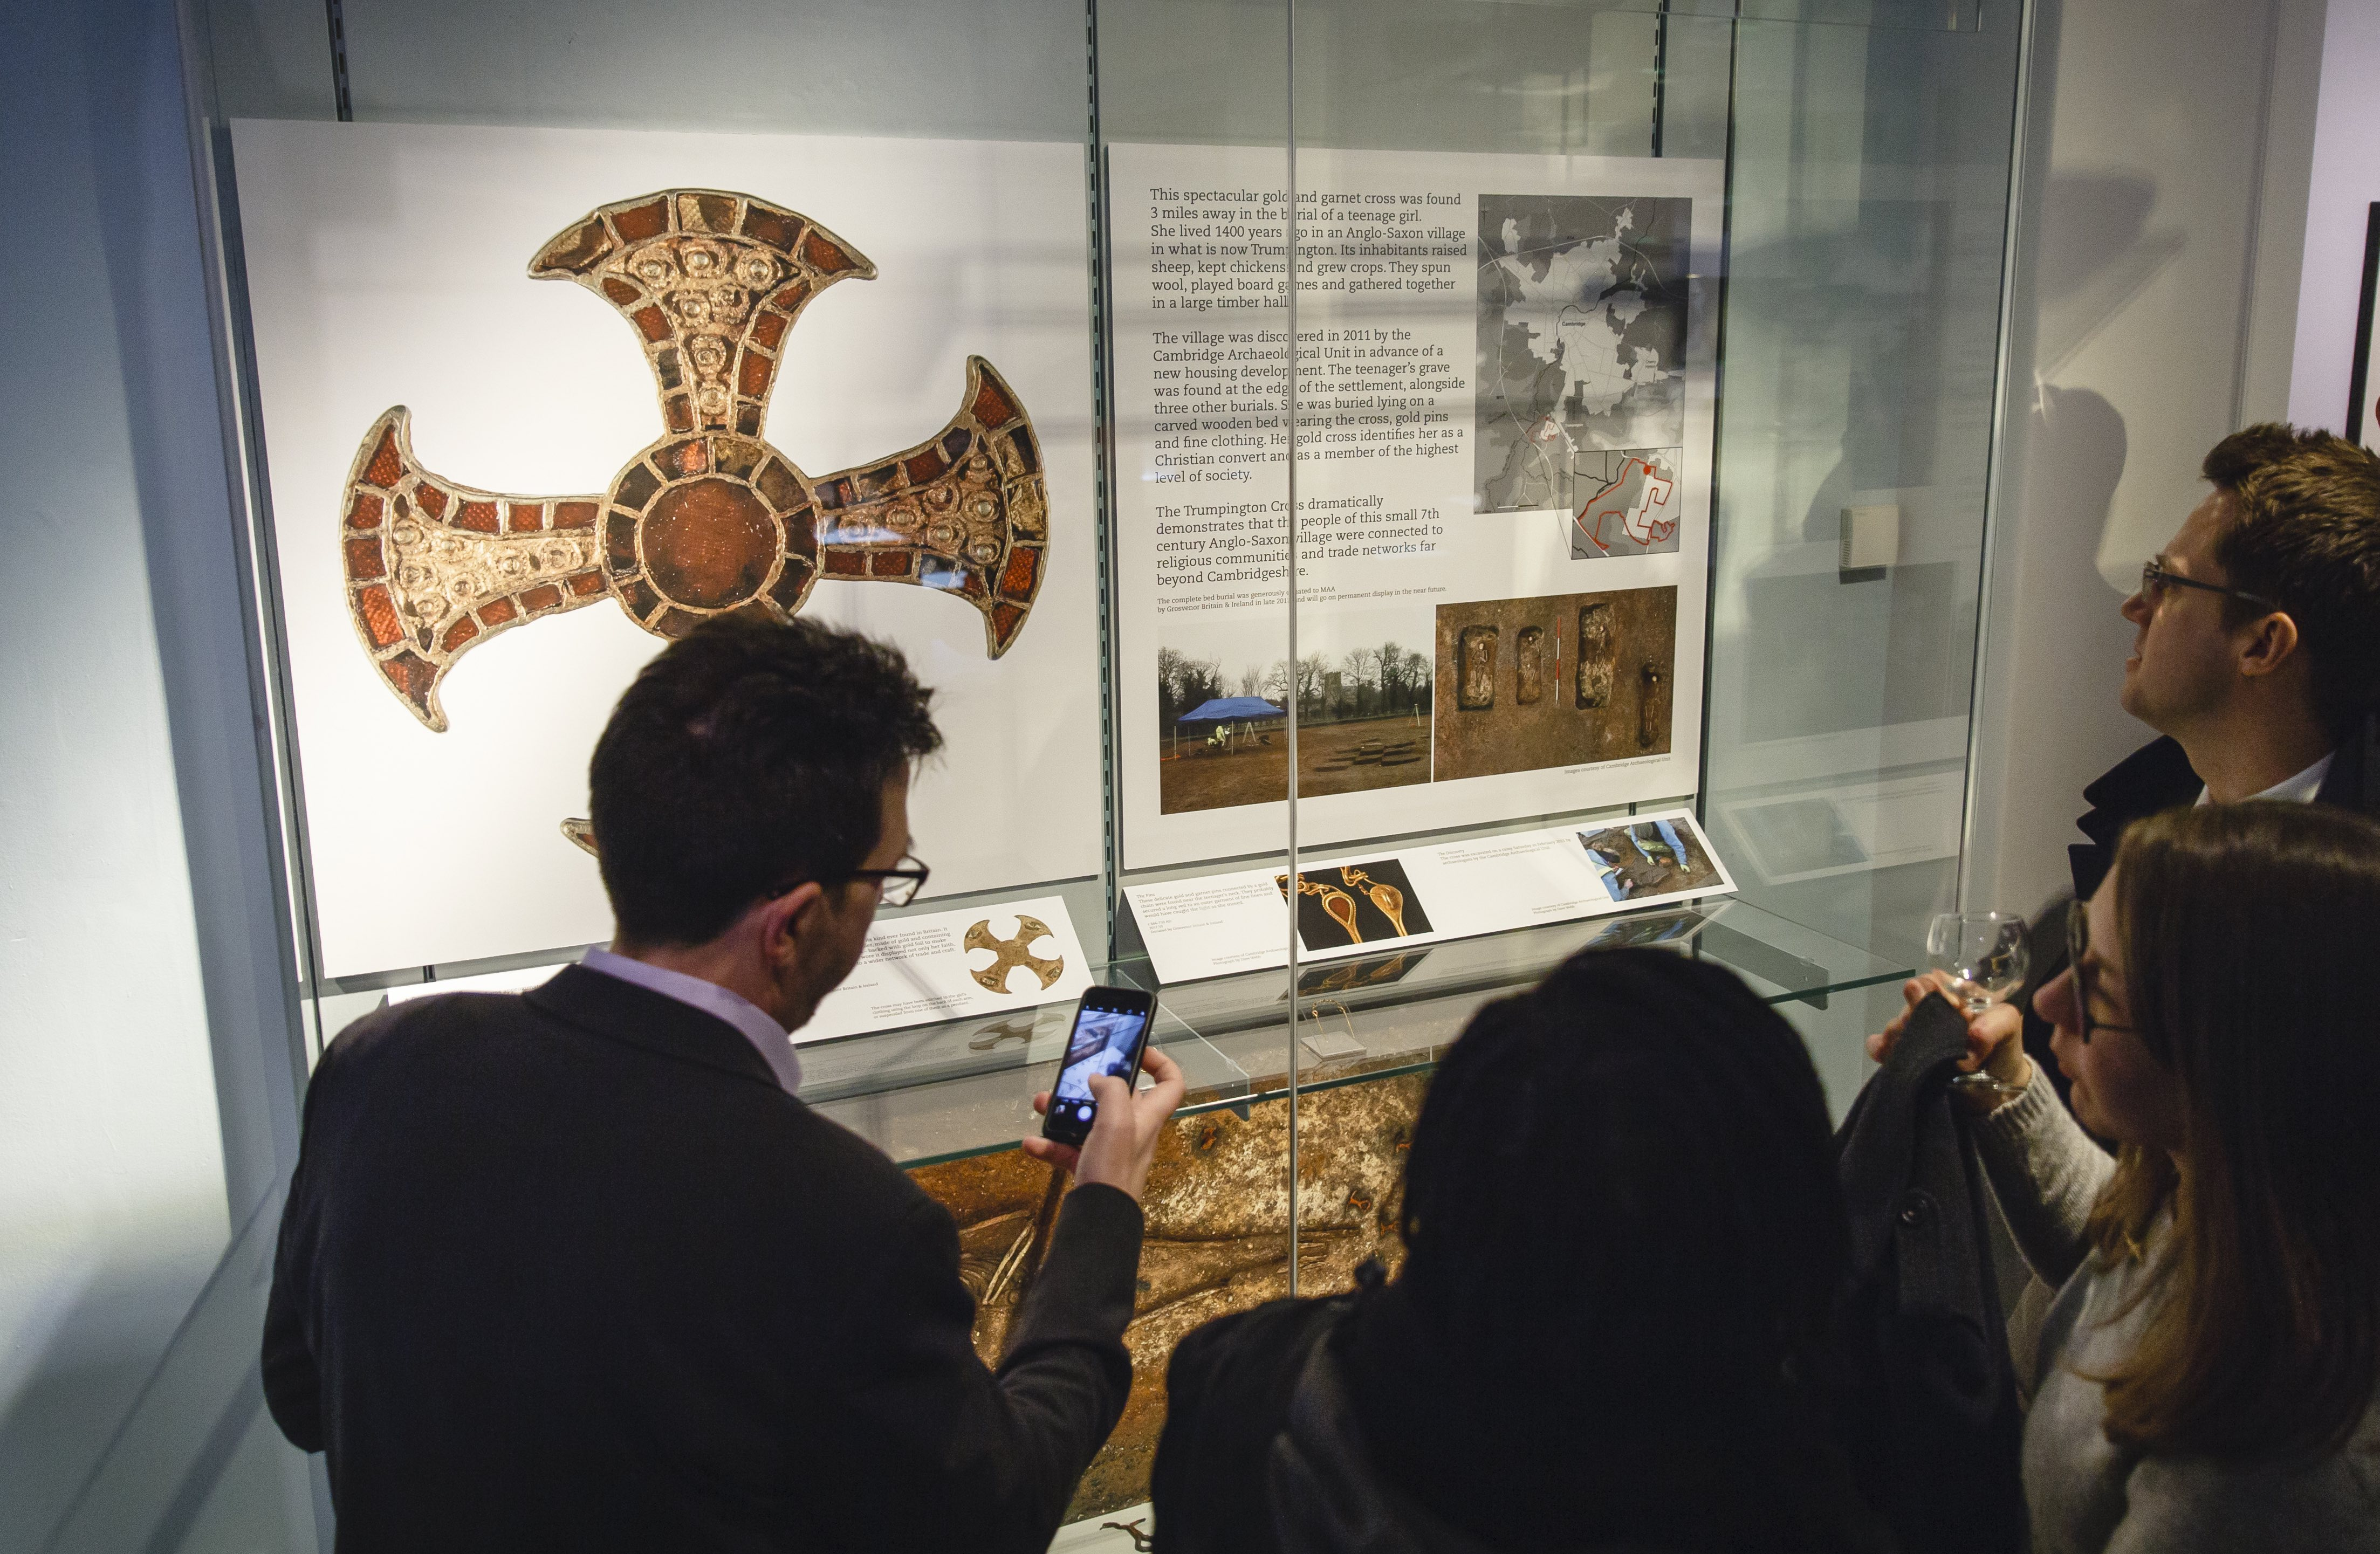 Visitors look at items in the Clarke Gallery